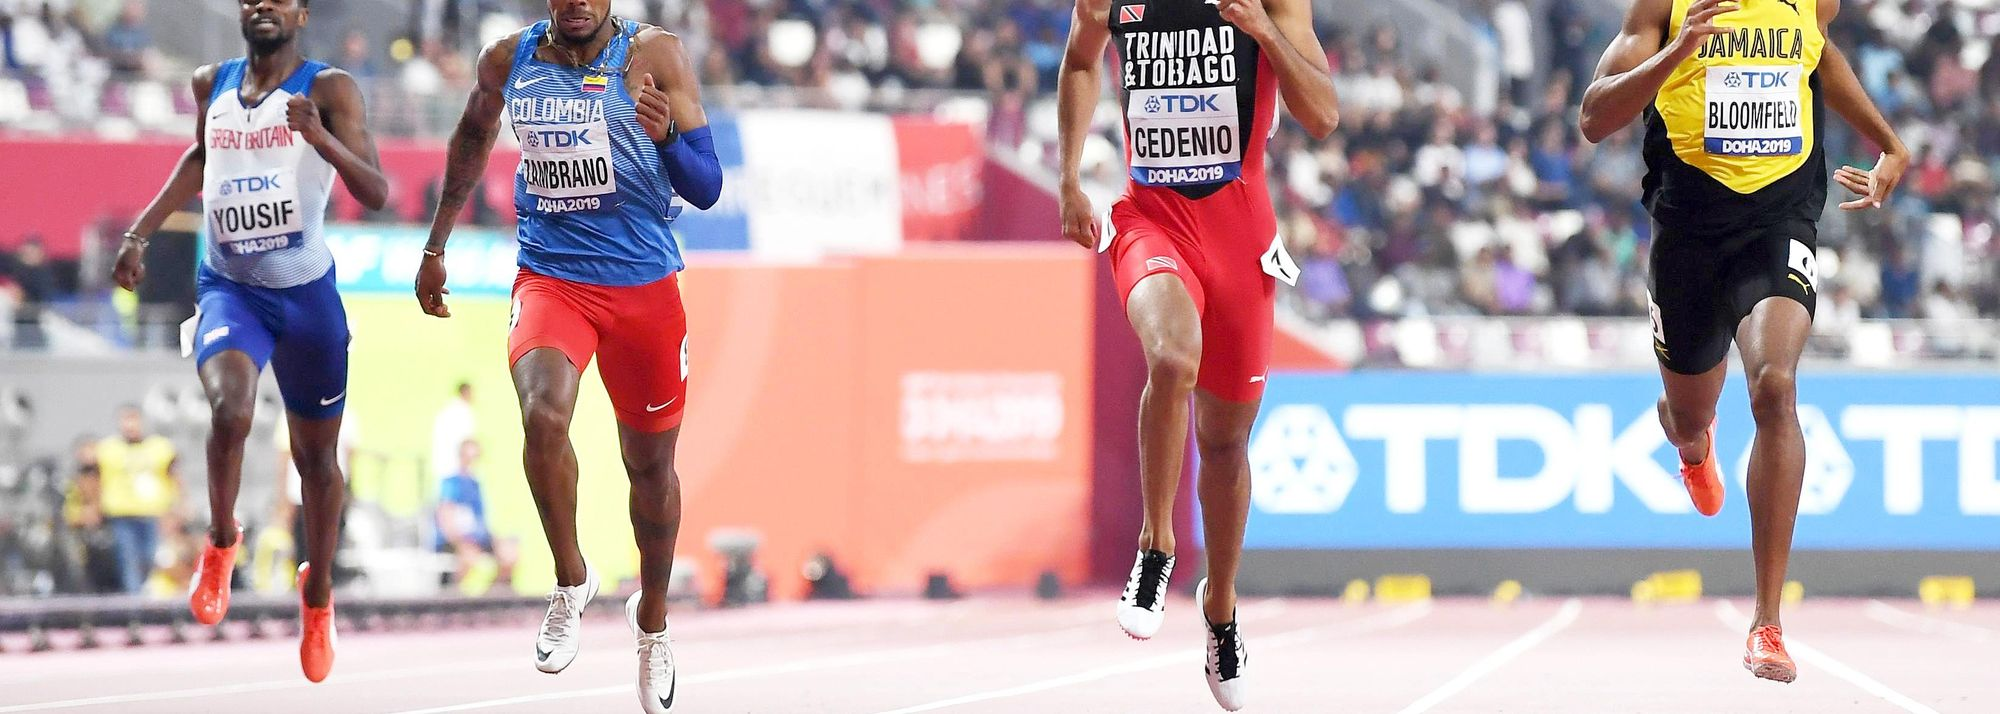 Rising Colombian star Anthony Zambrano produced a major surprise at the World Athletics Championships Doha 2019 last month when he raced to 400m silver. The 21-year-old clocked a notable 44.15 to clip a hefty 0.14 from the South American record set by Brazil's Sanderlei Claro Parrela at the 1999 World Championships in Seville when Zambrano was barely a year old.